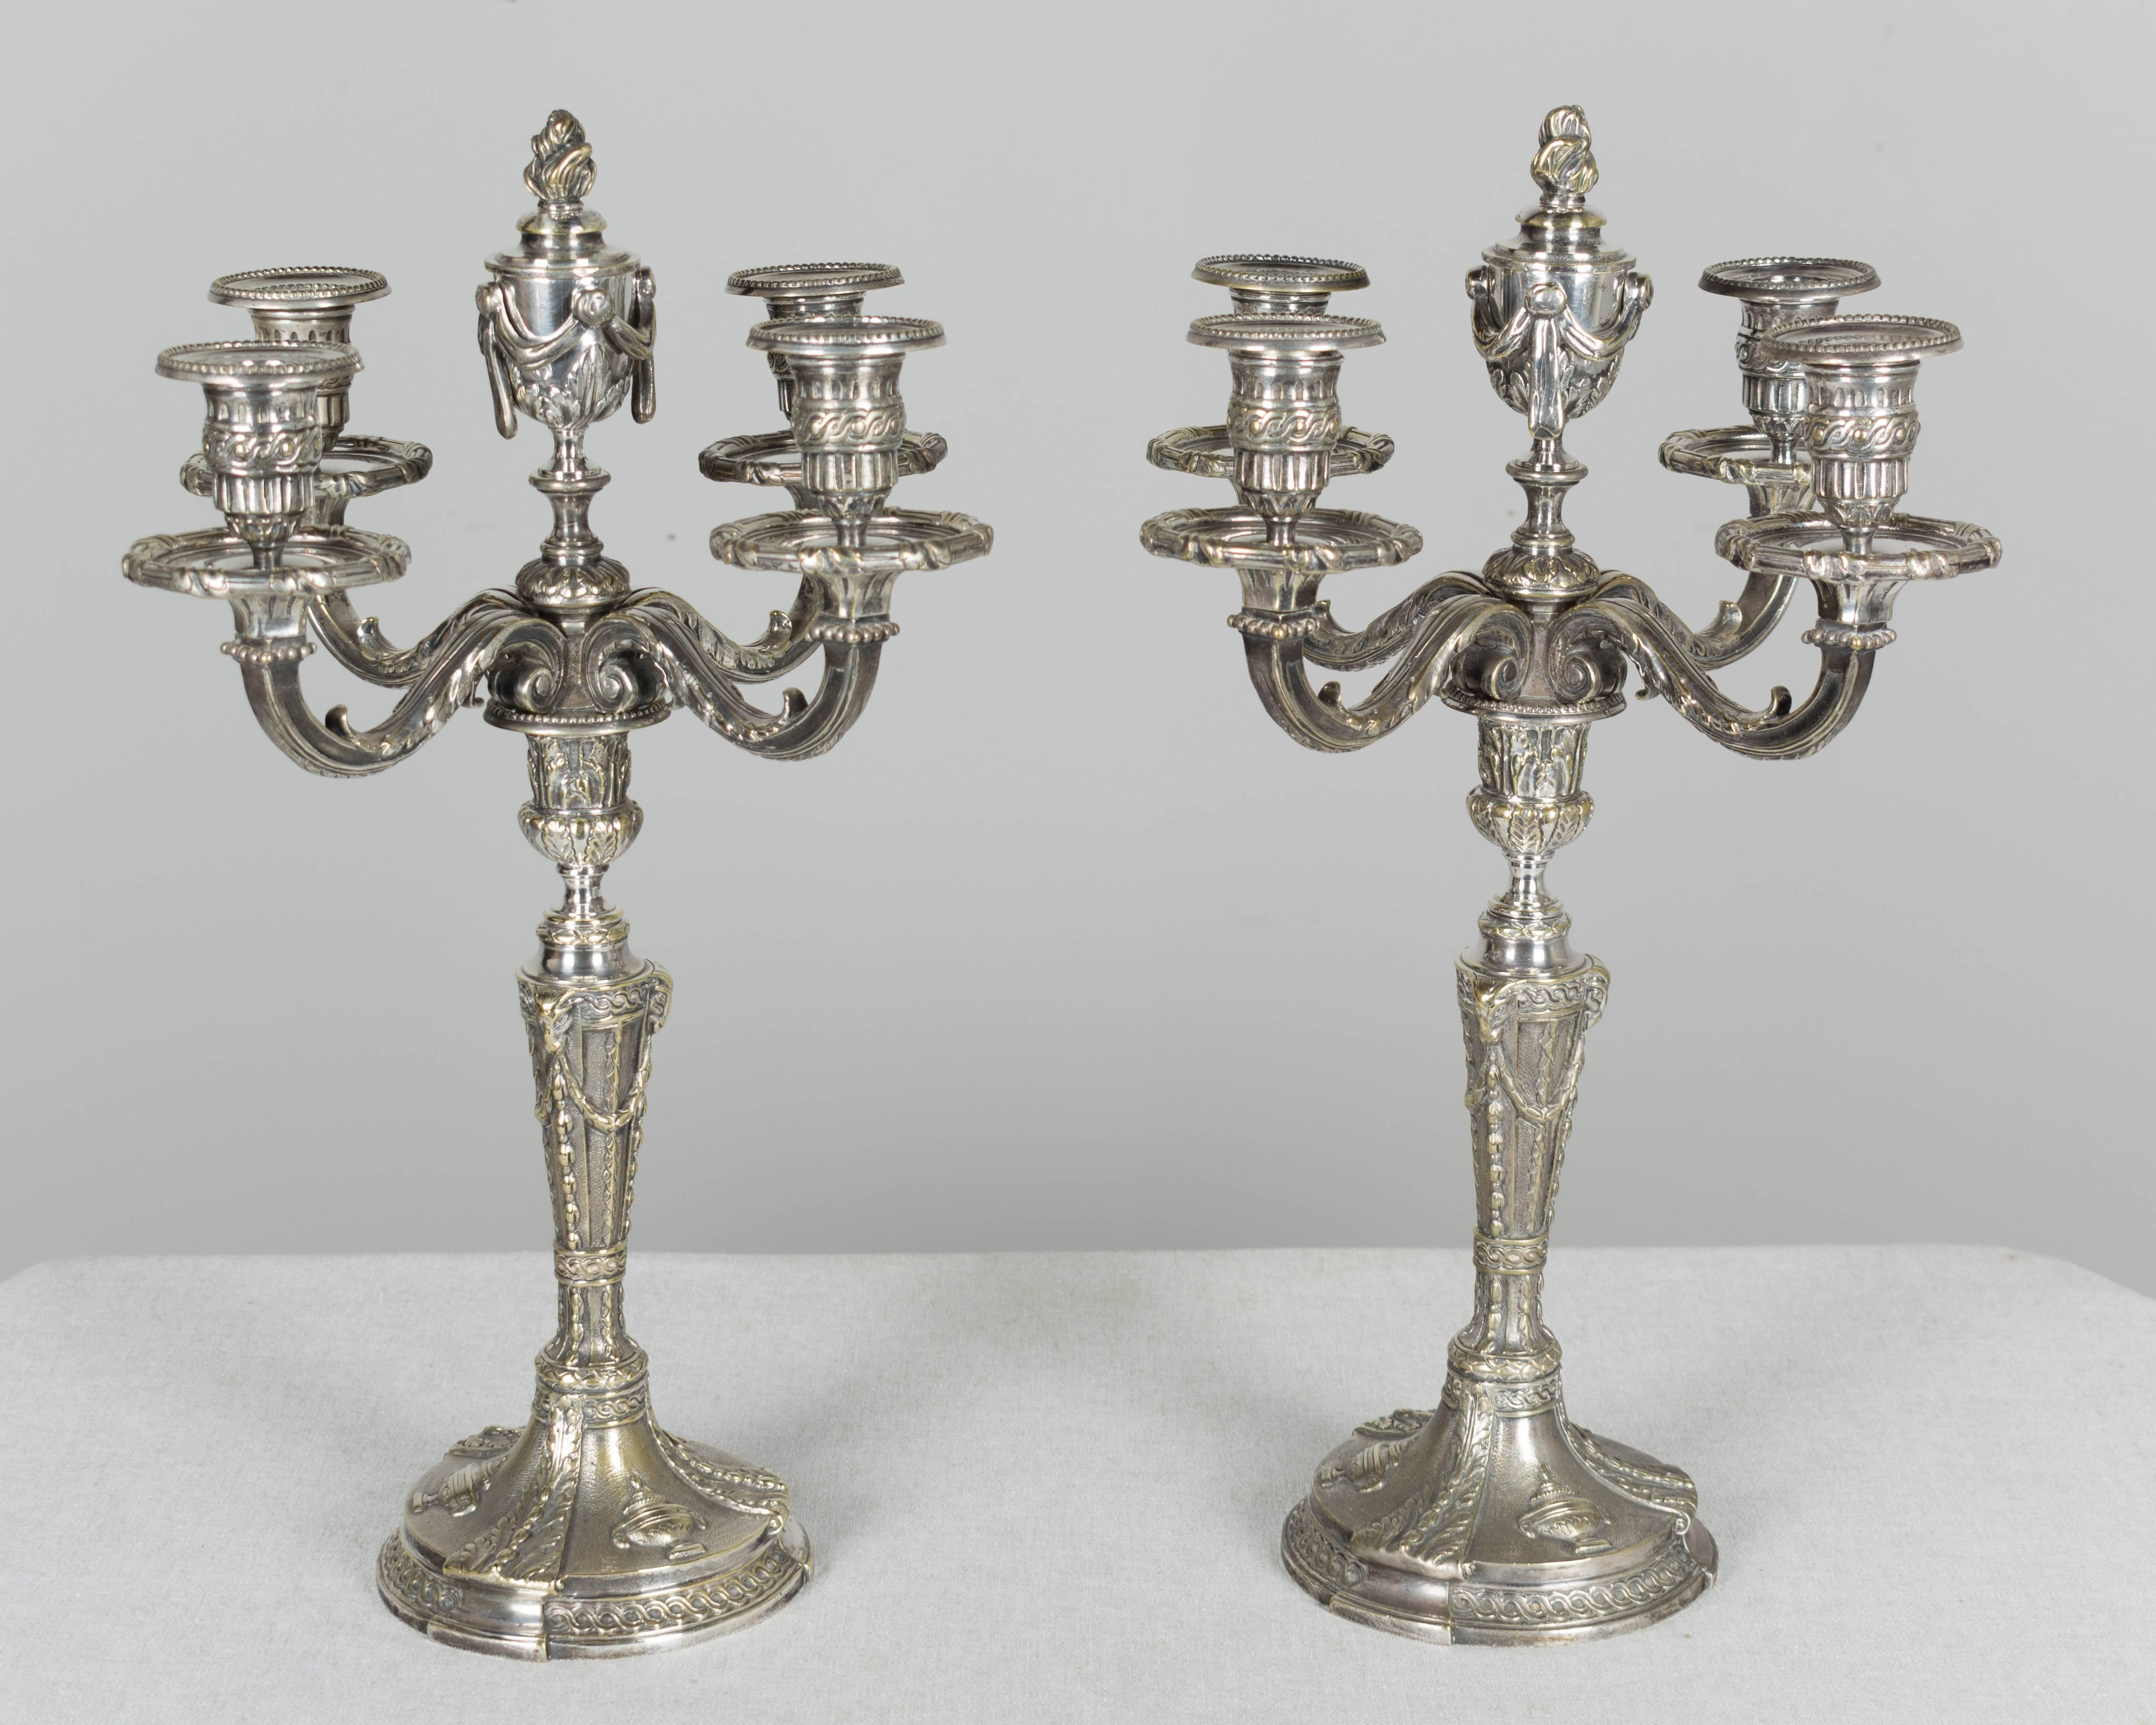 Louis XV Pair of 19th Century French Silver Plated Candelabra For Sale  sc 1 st  1stDibs & Pair of 19th Century French Silver Plated Candelabra at 1stdibs